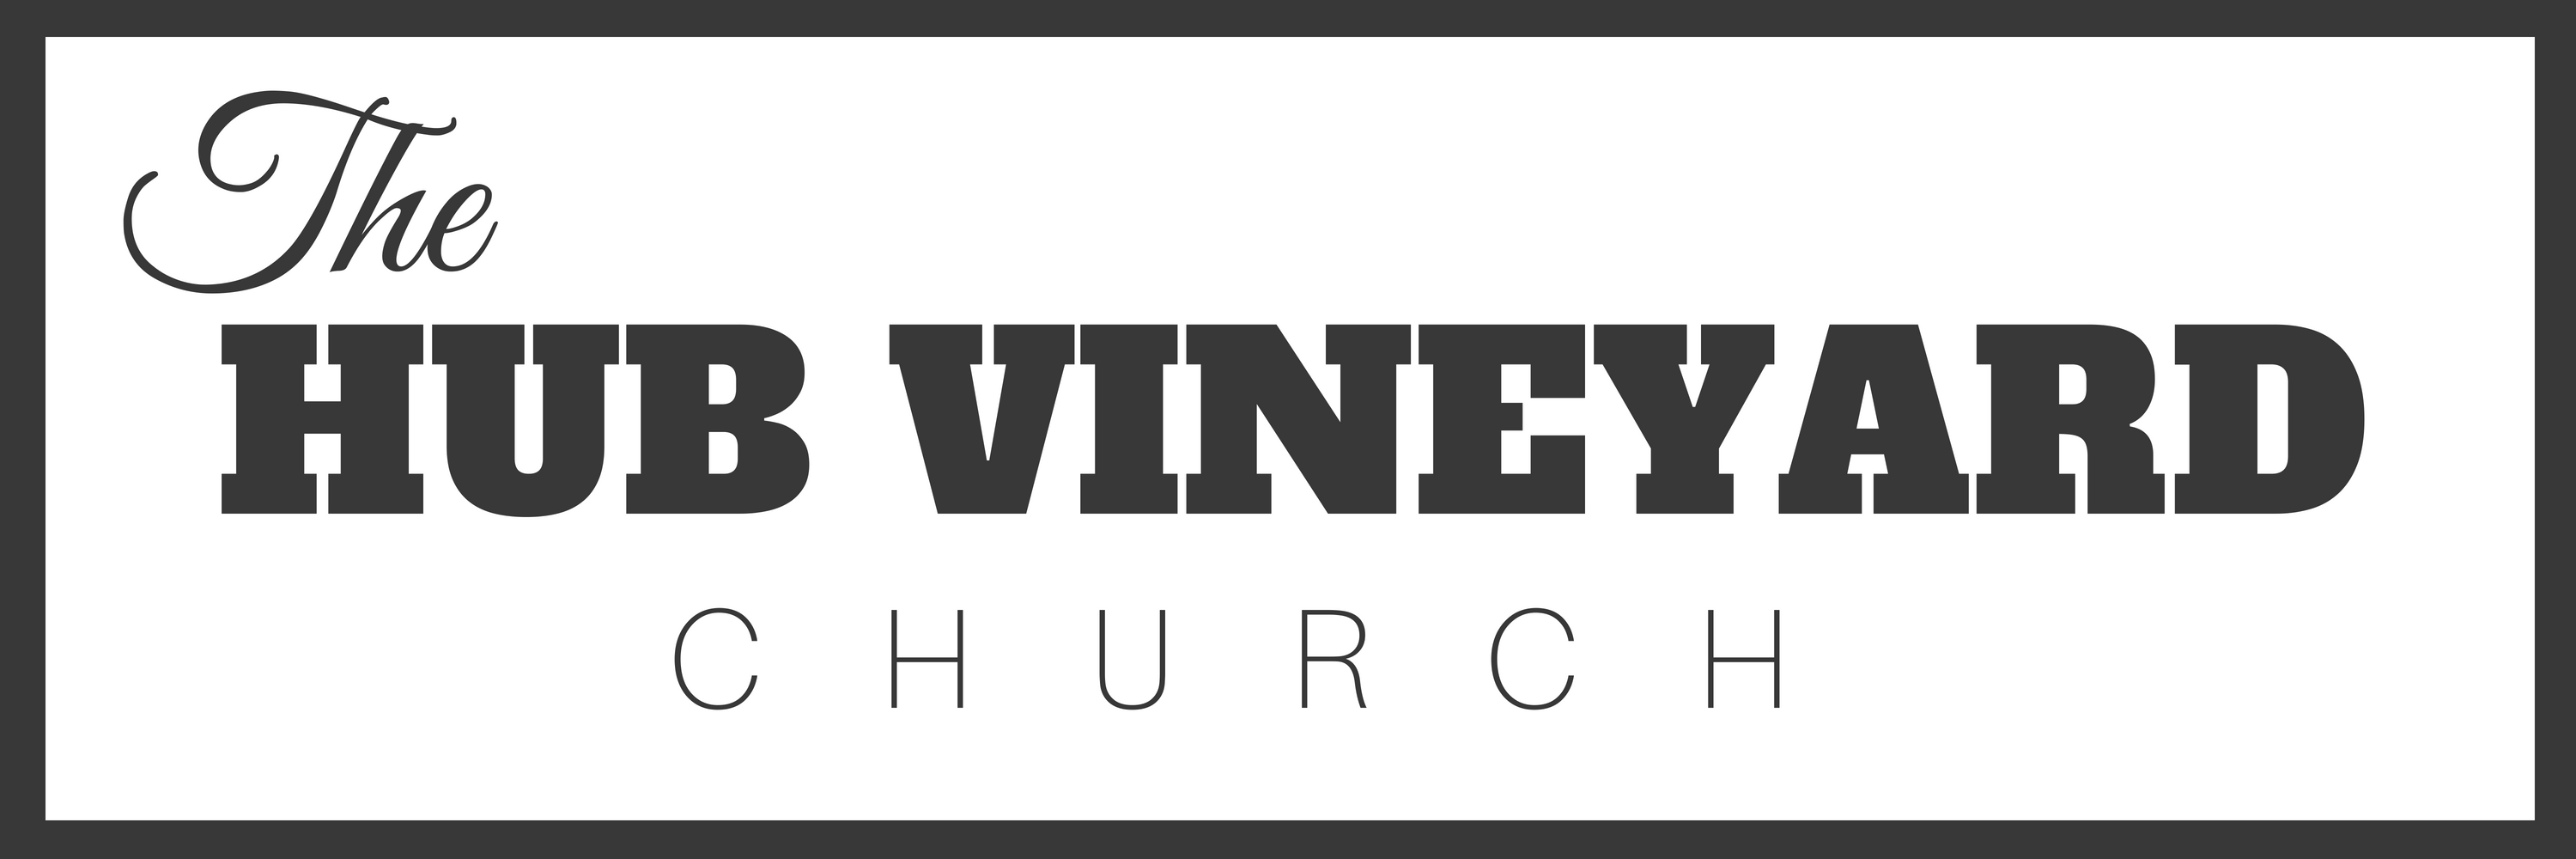 The Hub Vineyard Church